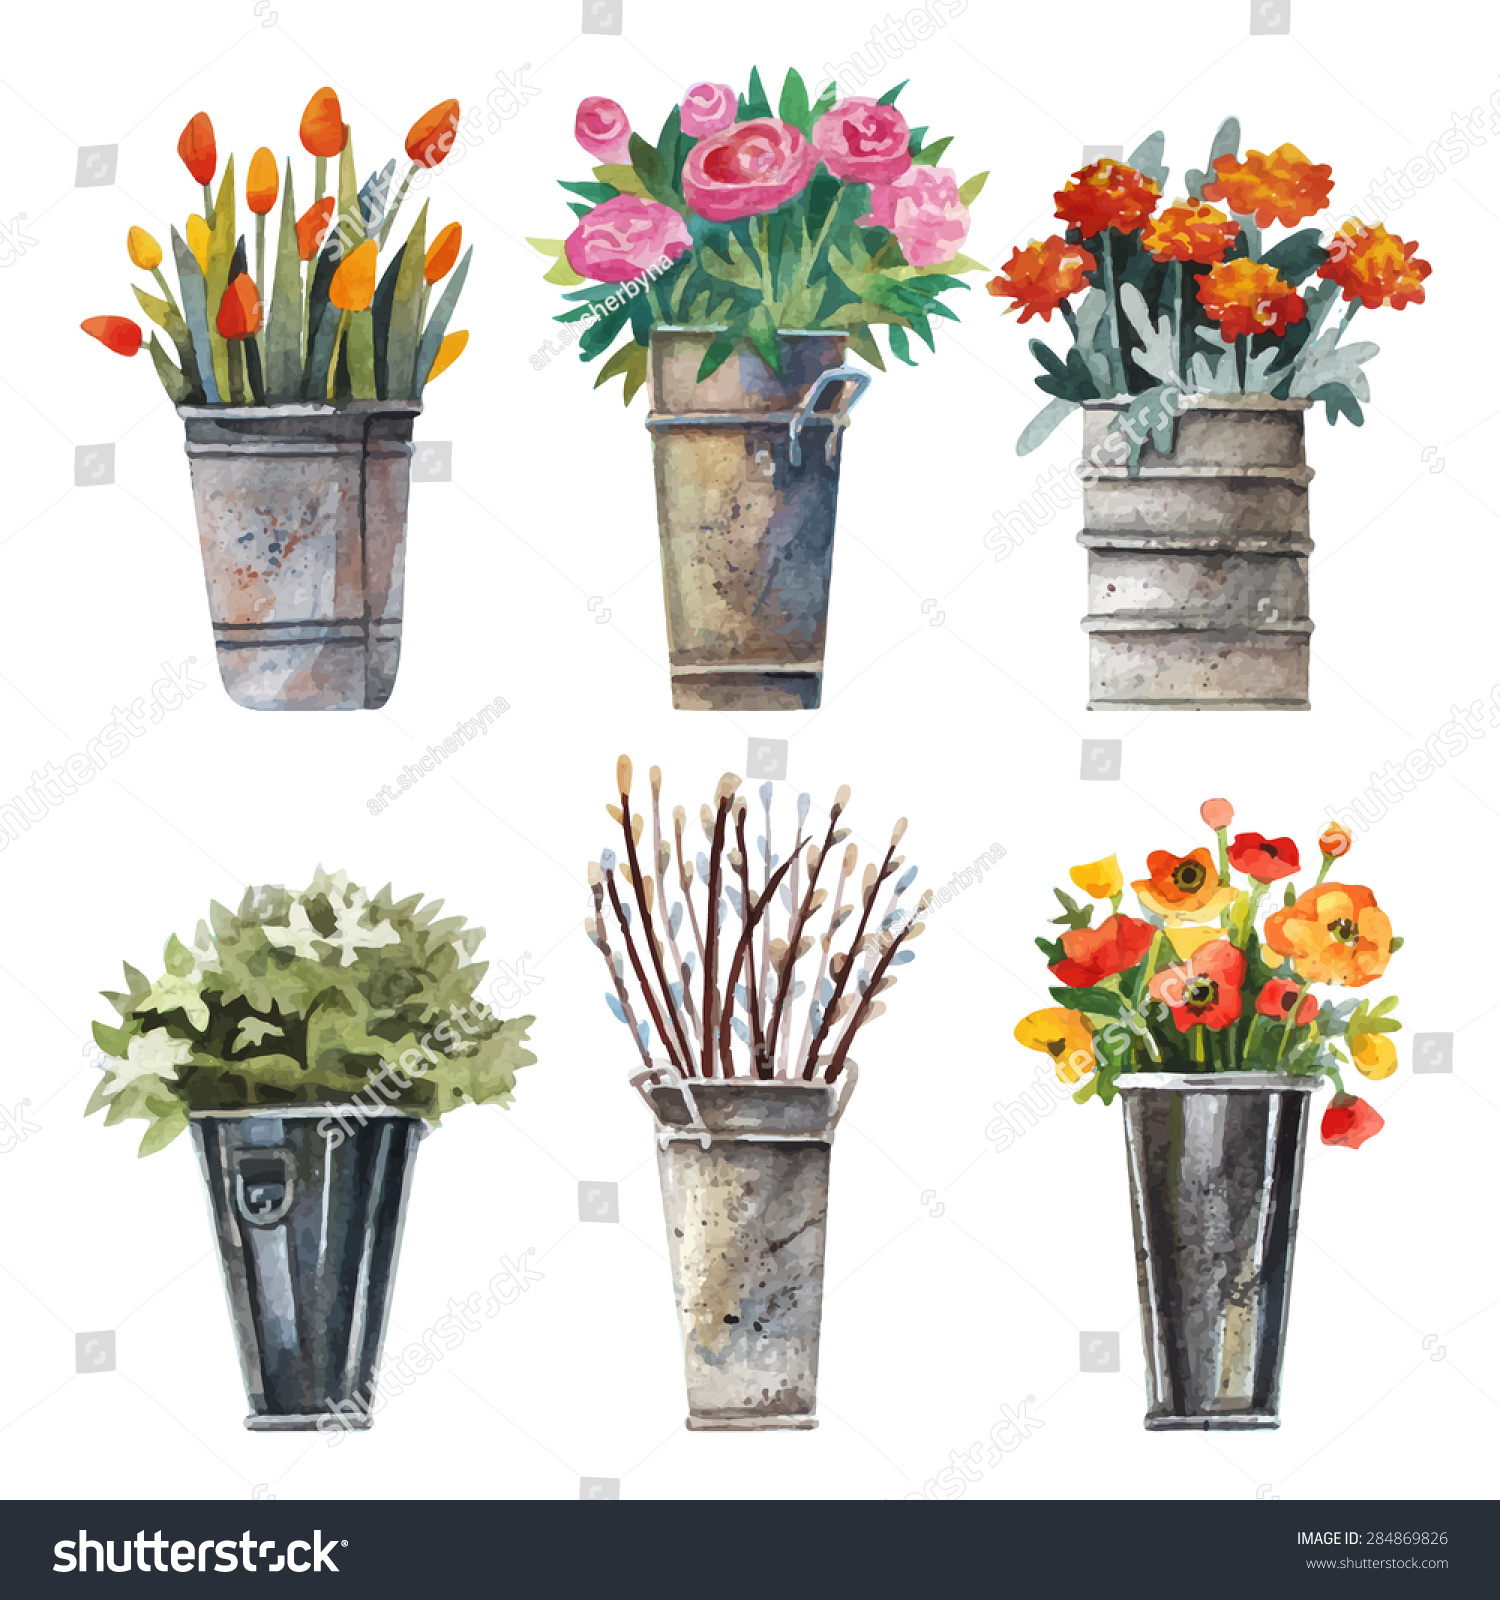 Vector set images flower shop watercolor stock vector 2018 vector set of images for the flower shop in watercolor style bouquets of flowers in izmirmasajfo